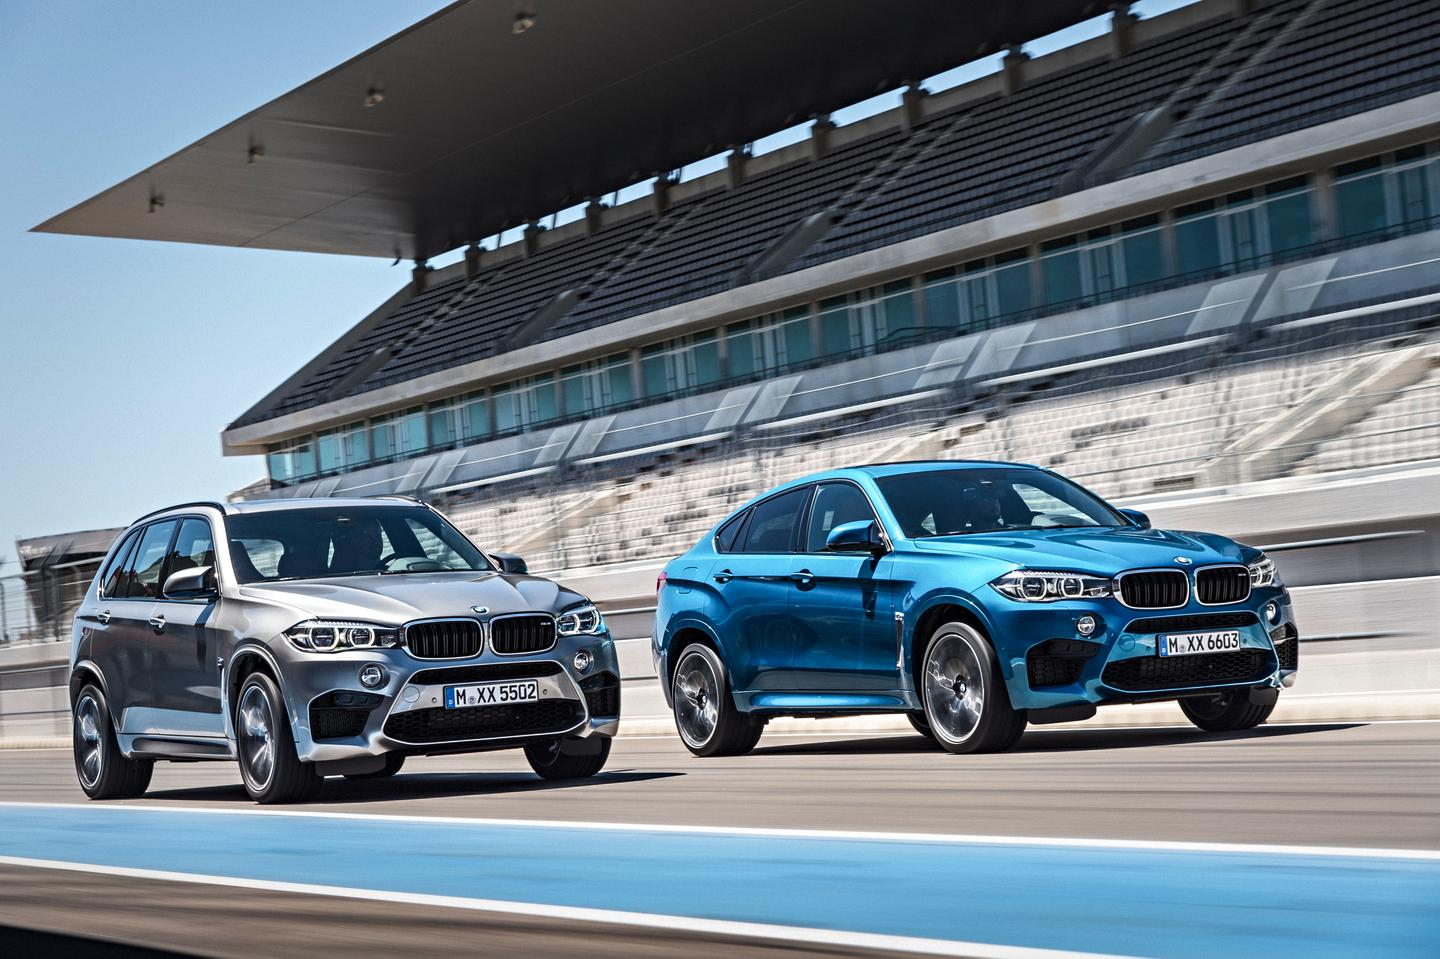 The new X5 M and X6 M are powered by a 4.4-liter V8